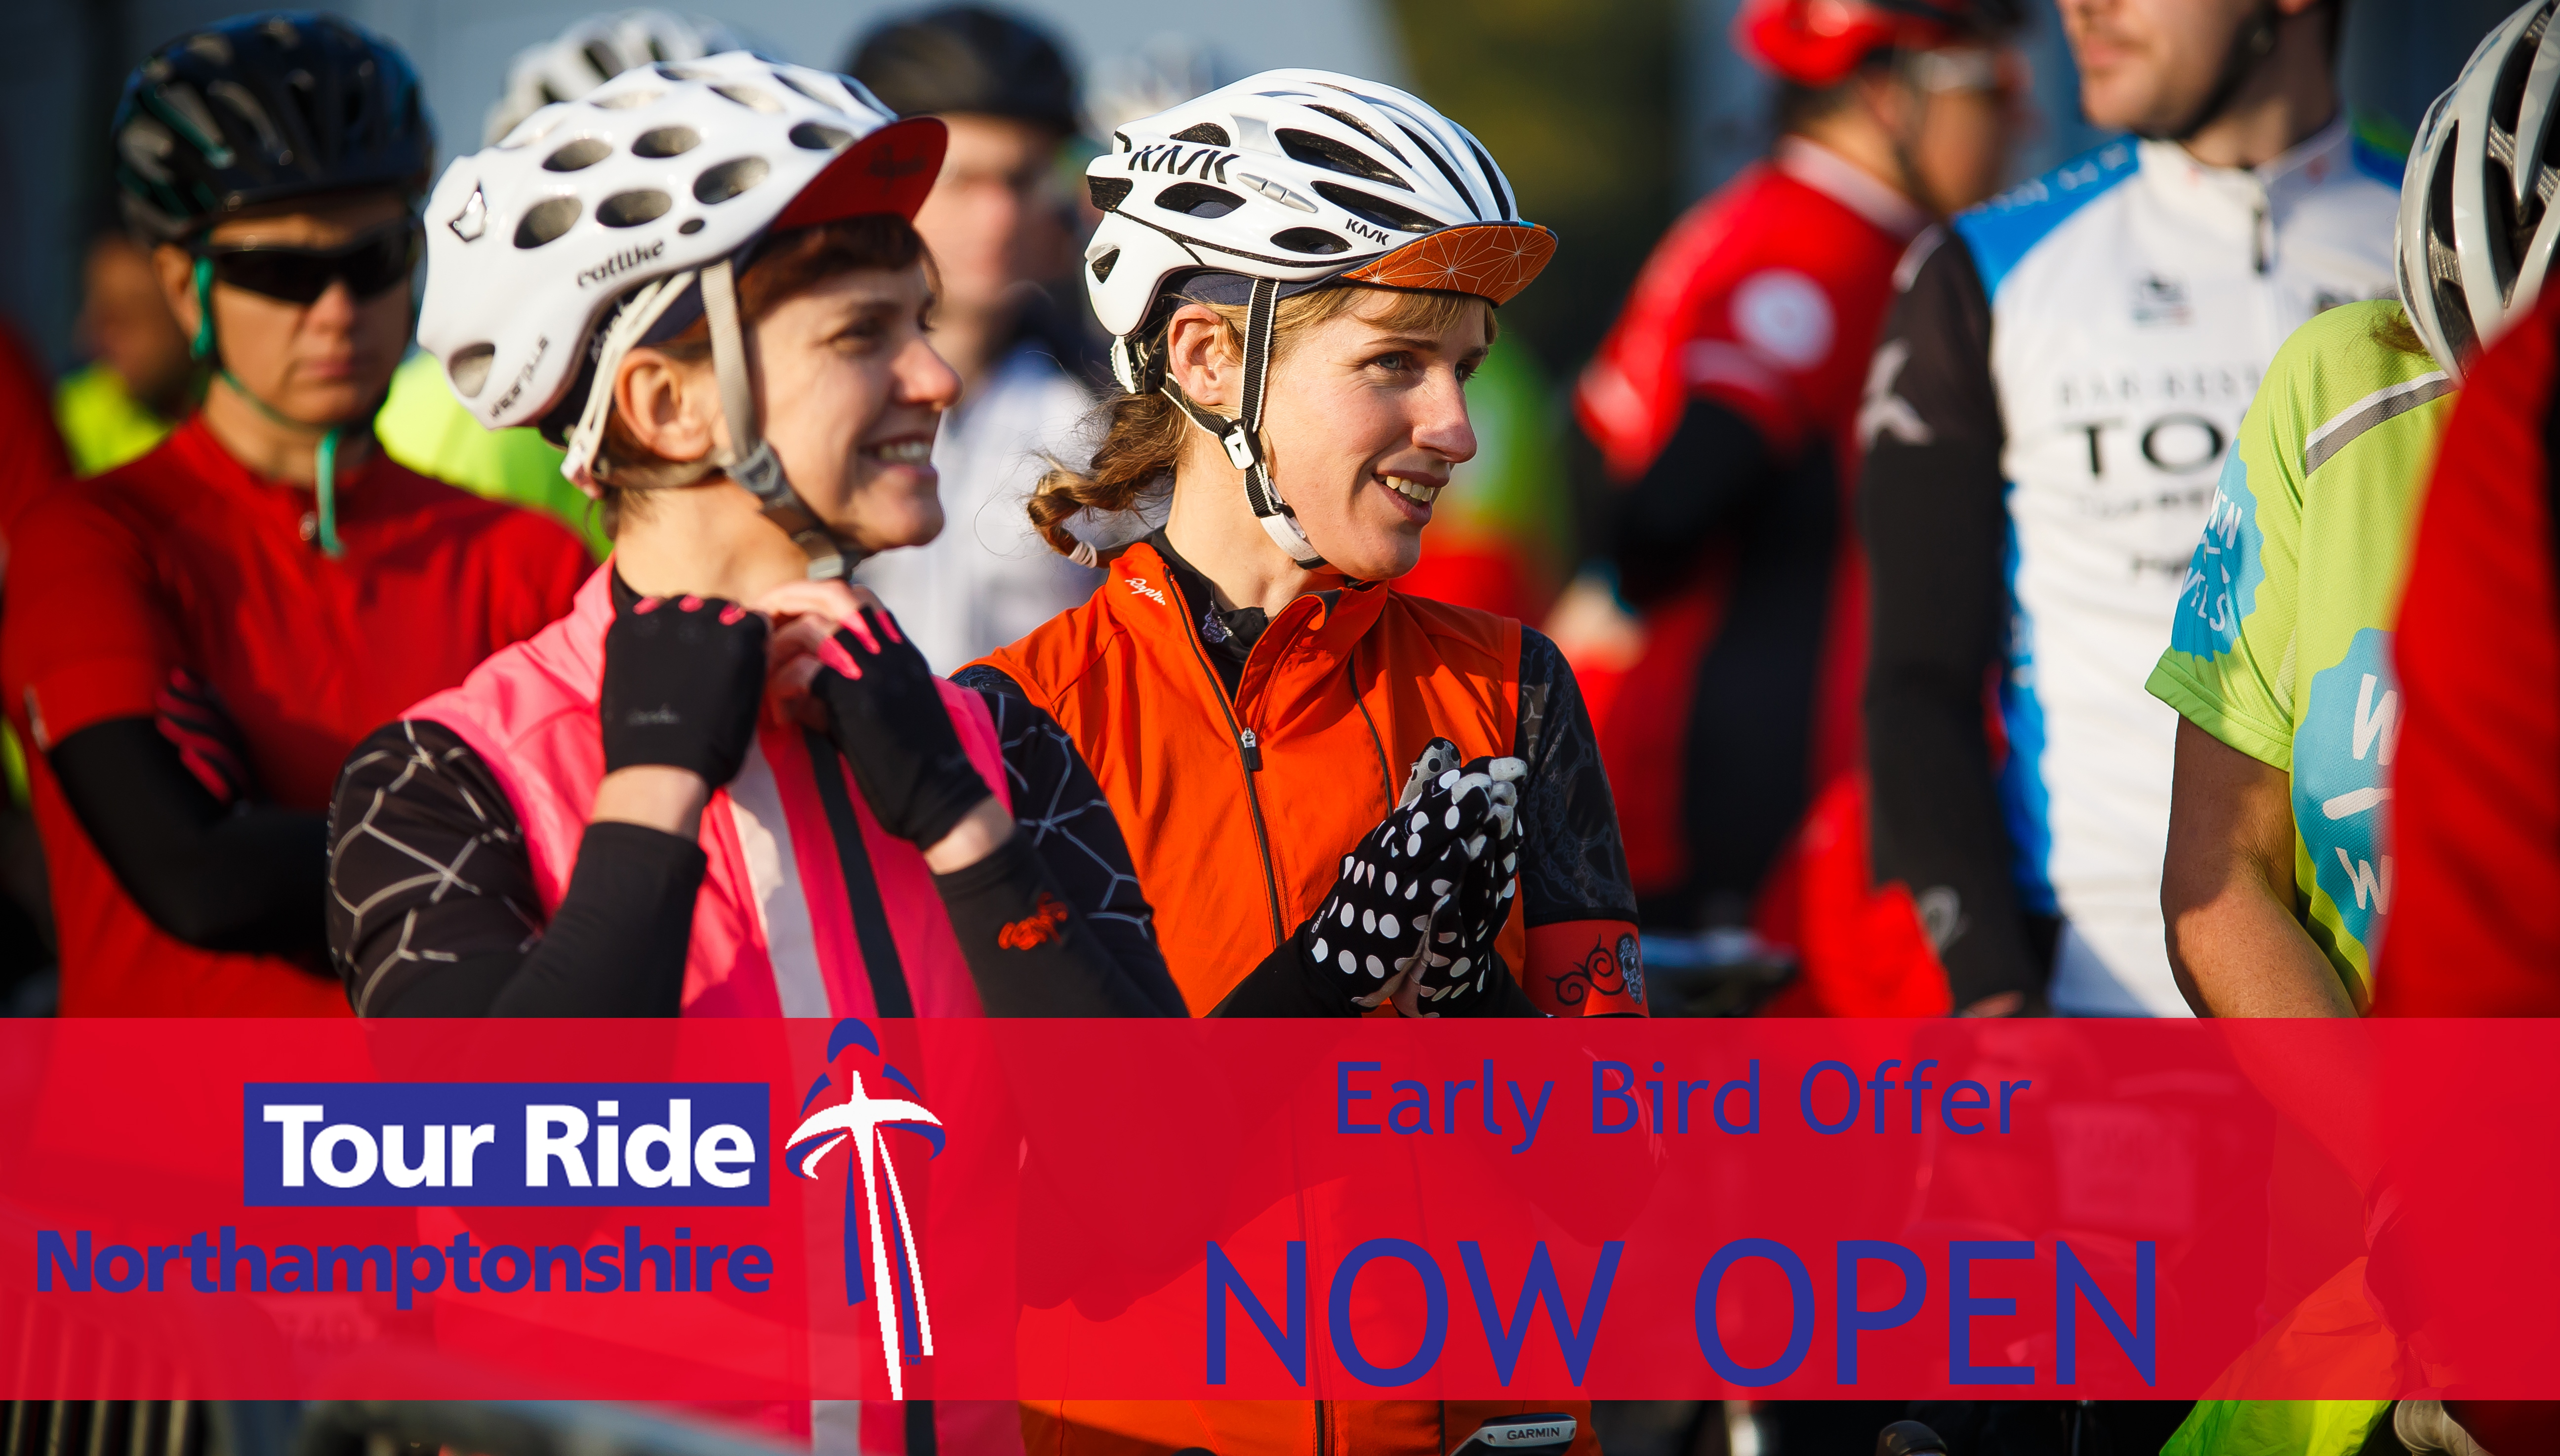 Early bird entries for Tour Ride Northamptonshire; Official Sportive of the Aviva Women's Tour now open